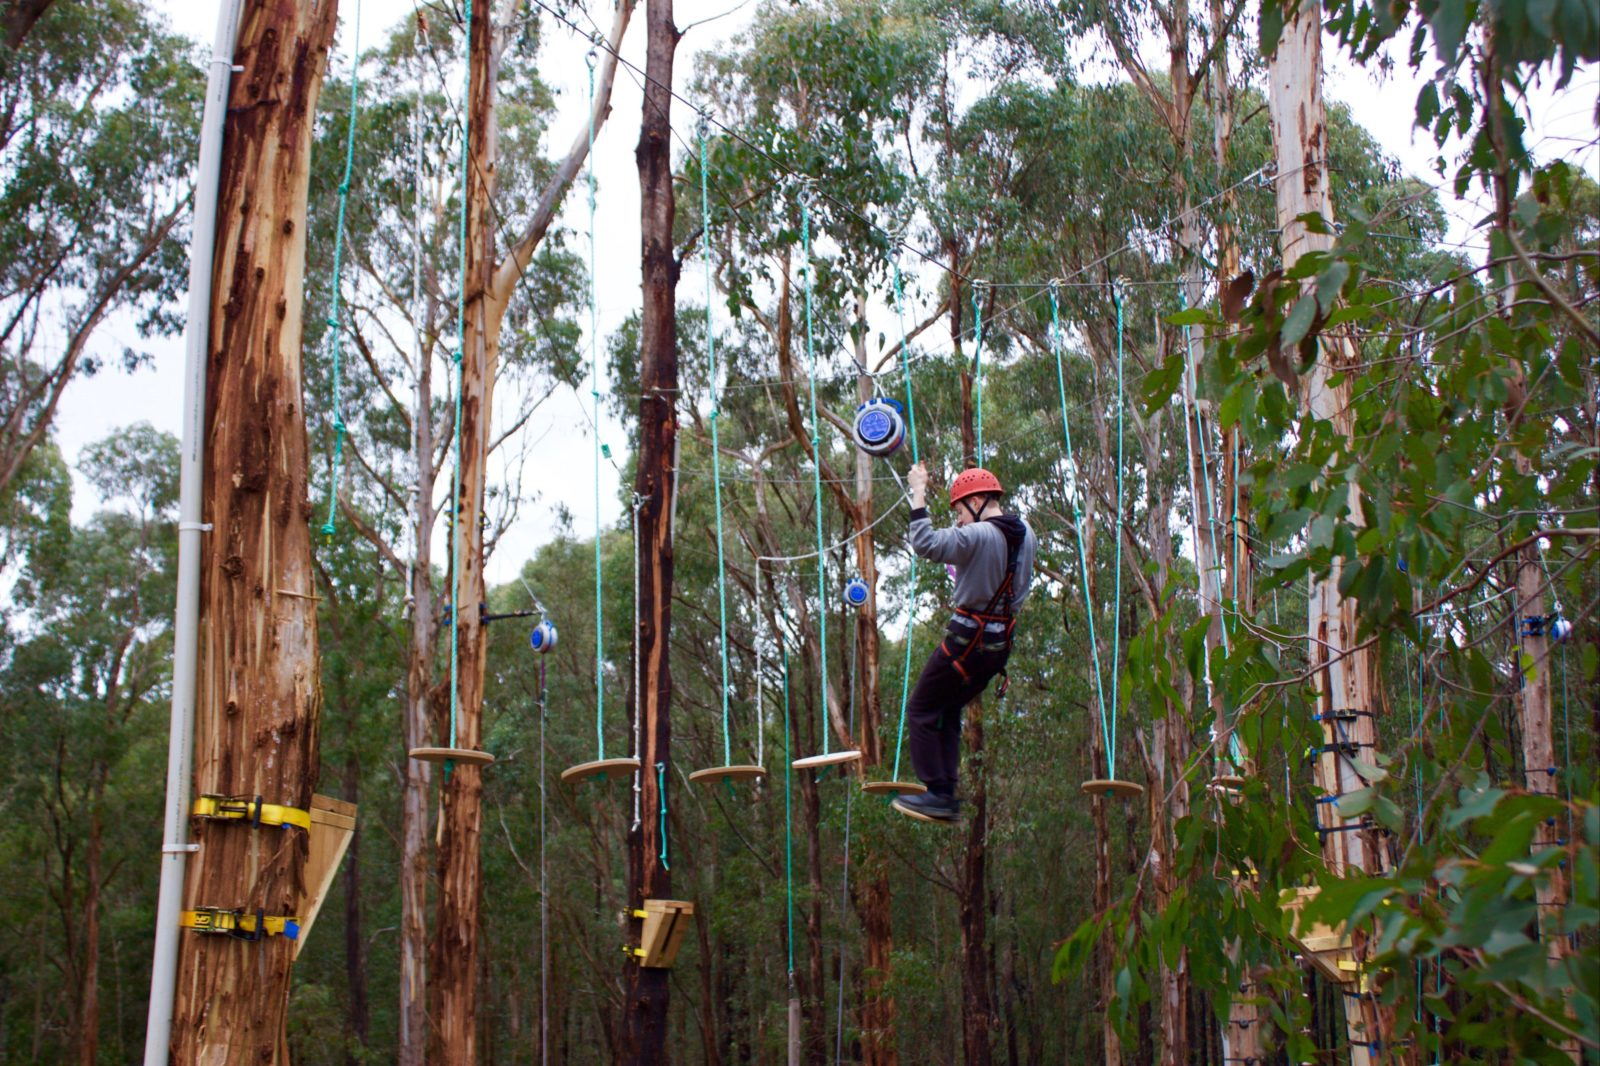 One of many treetop experiences in the eco nature facility.